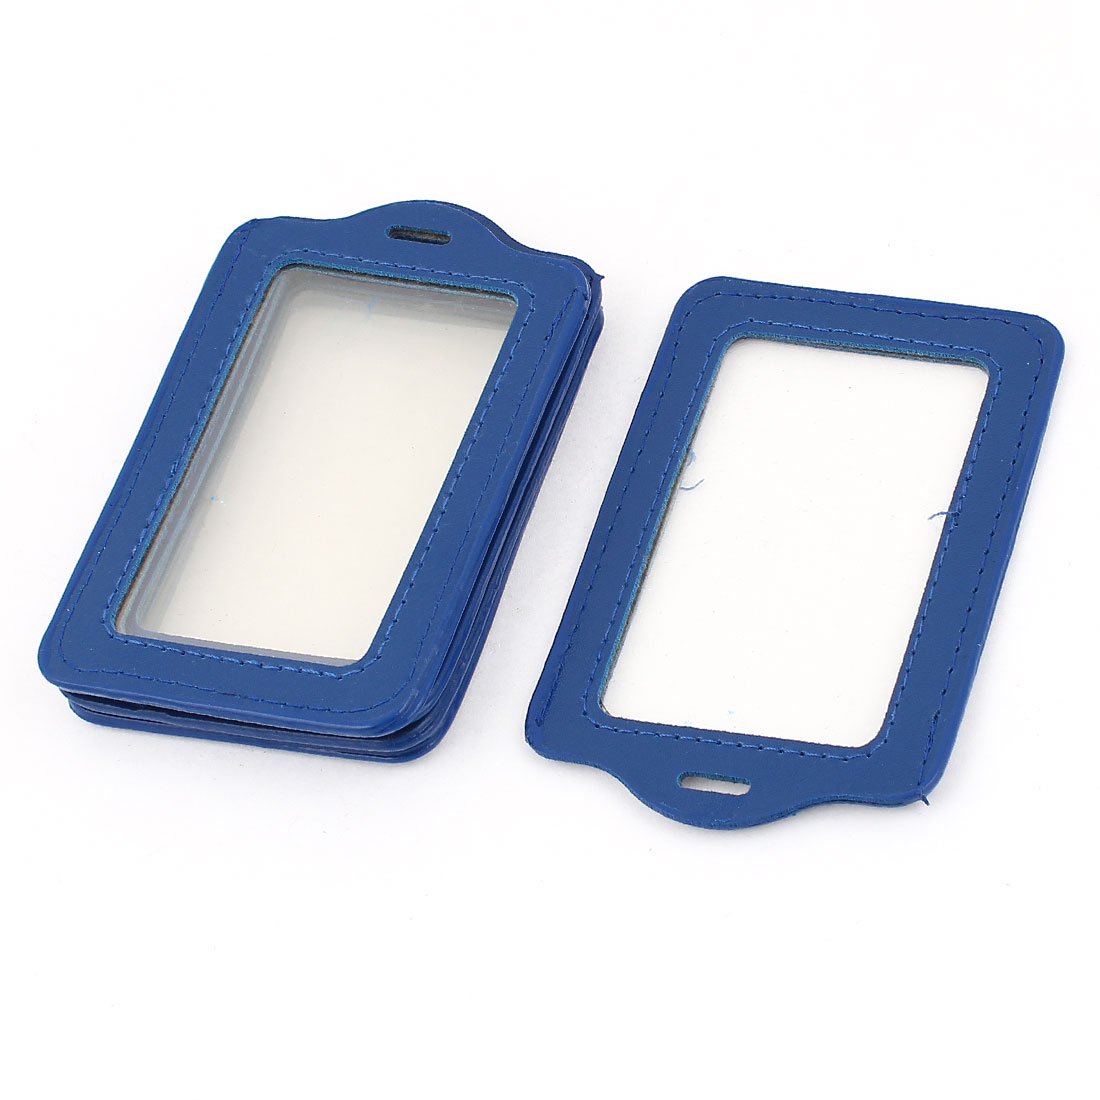 5 Pcs Clear Blue Rectangle Vertical Double Cards Office Card Badge Holder